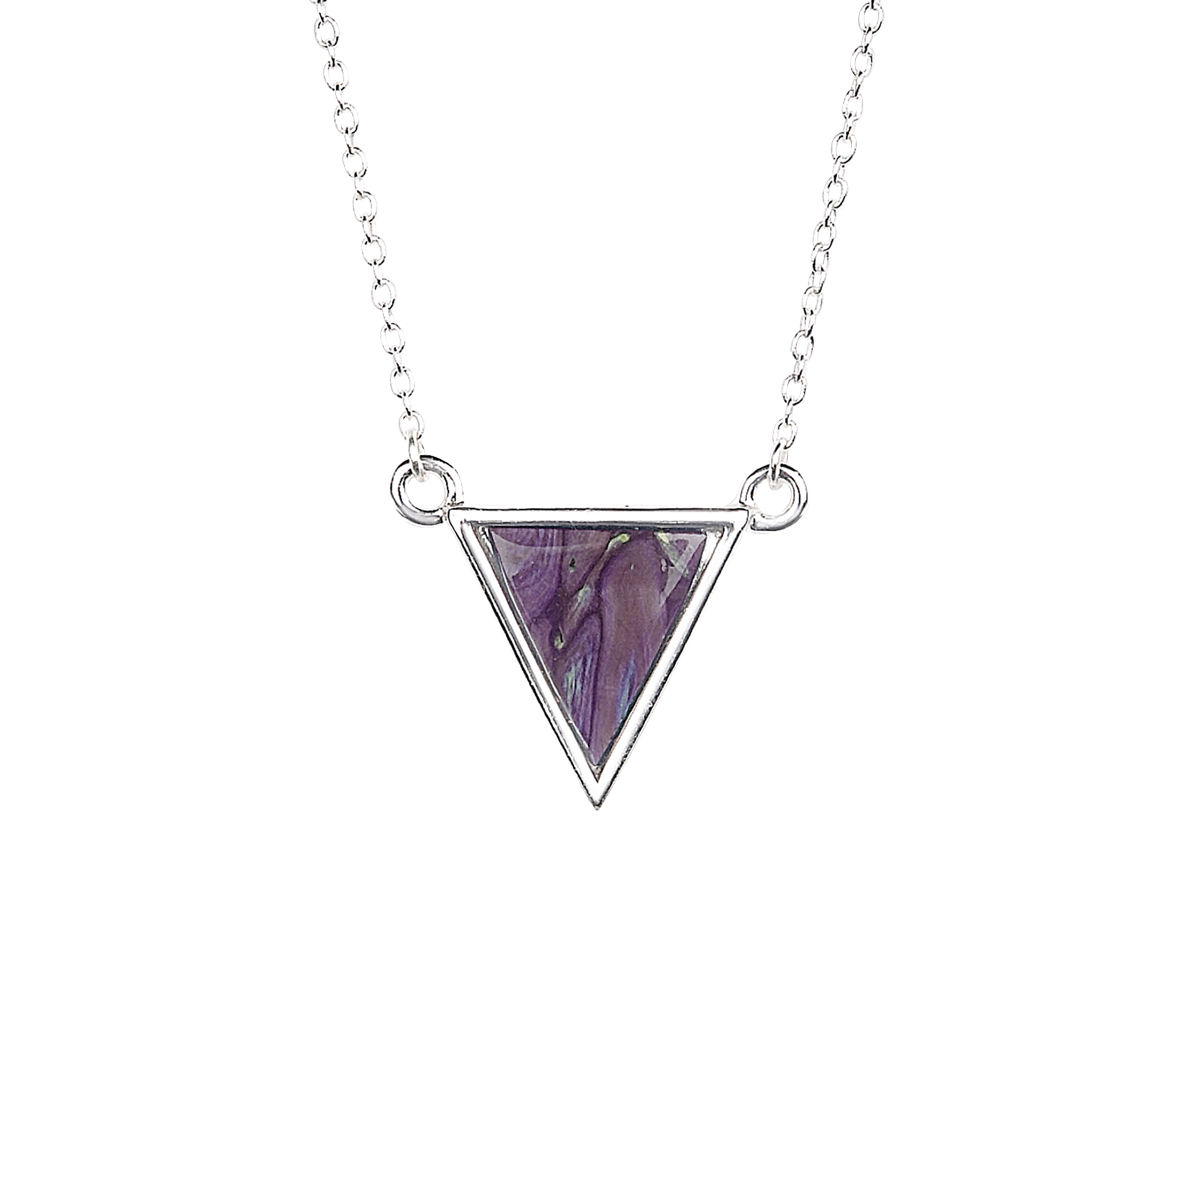 Neuk Triangle Necklace